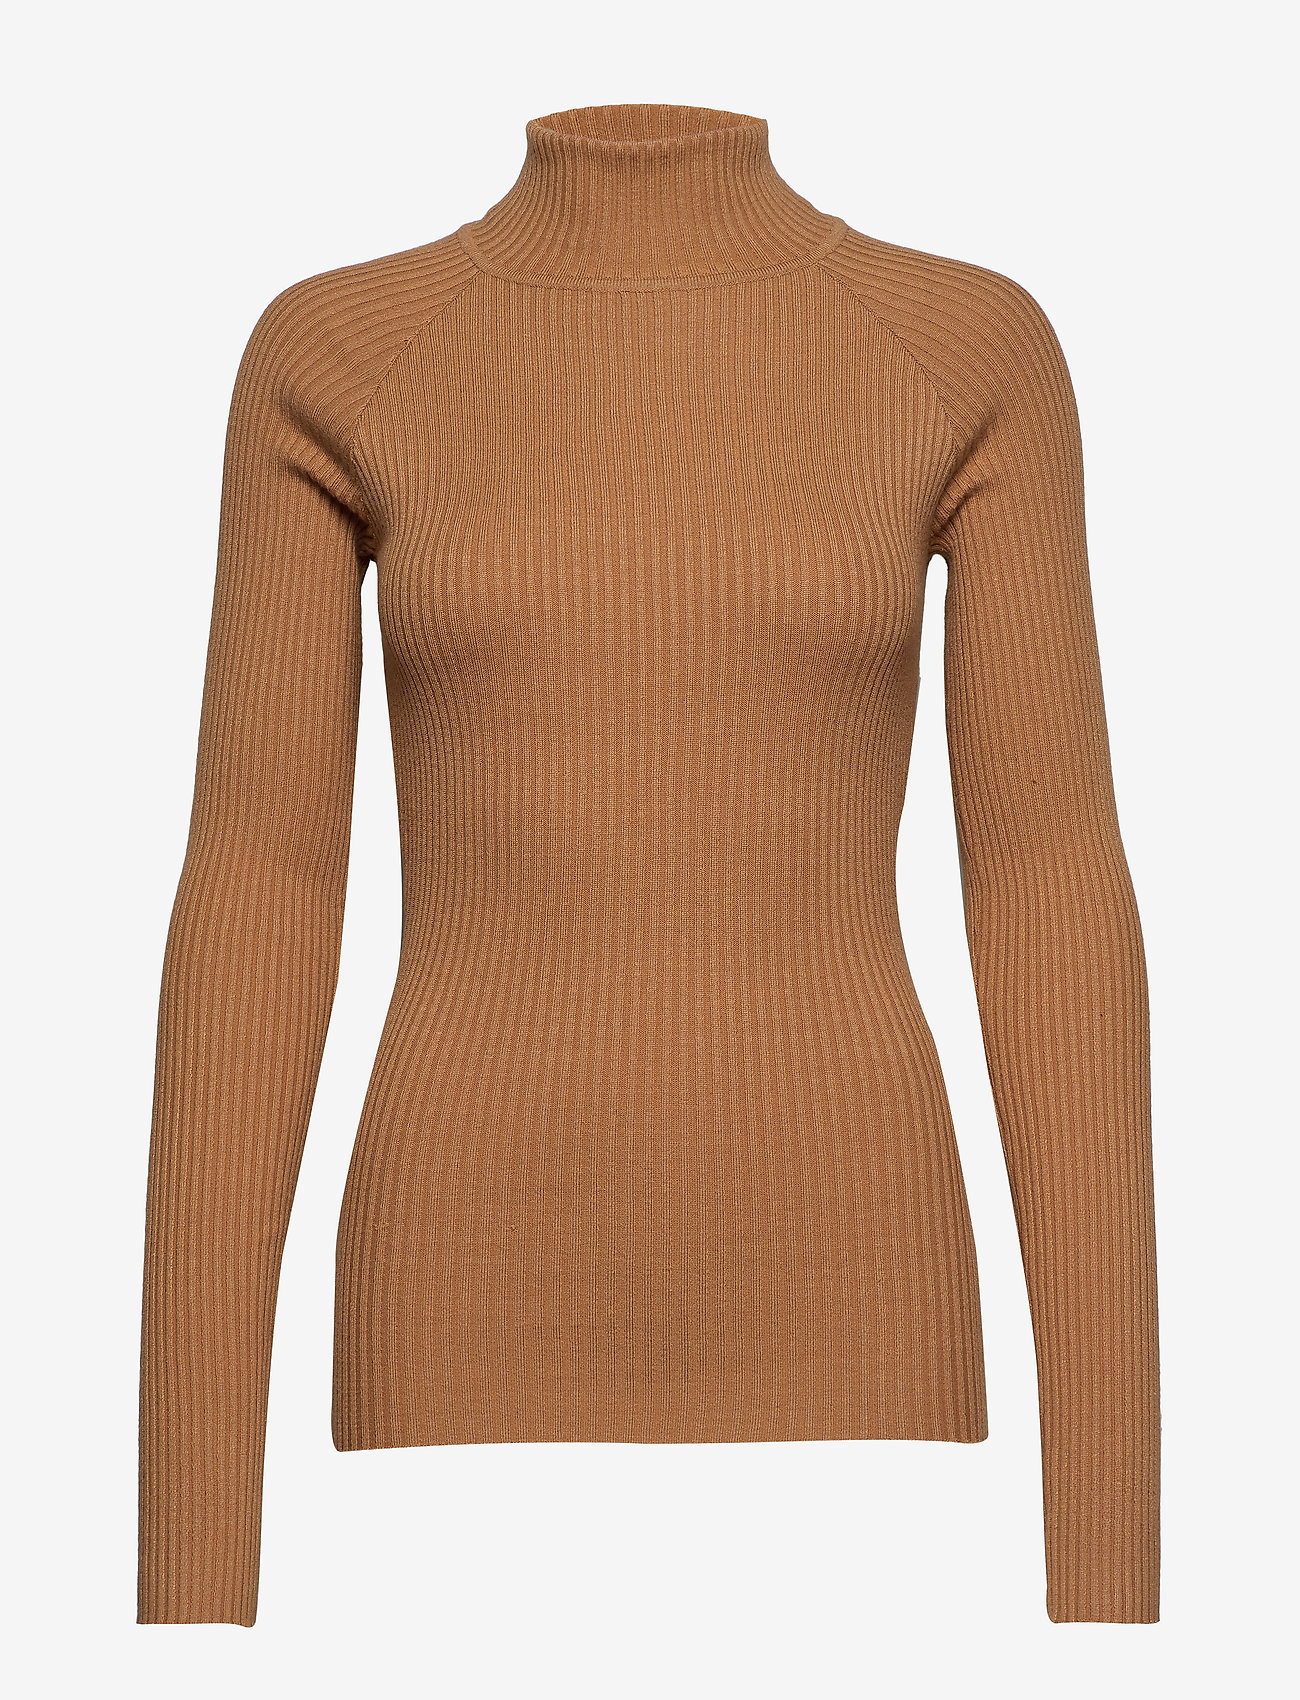 Sofie Schnoor - Blouse - turtlenecks - camel - 0